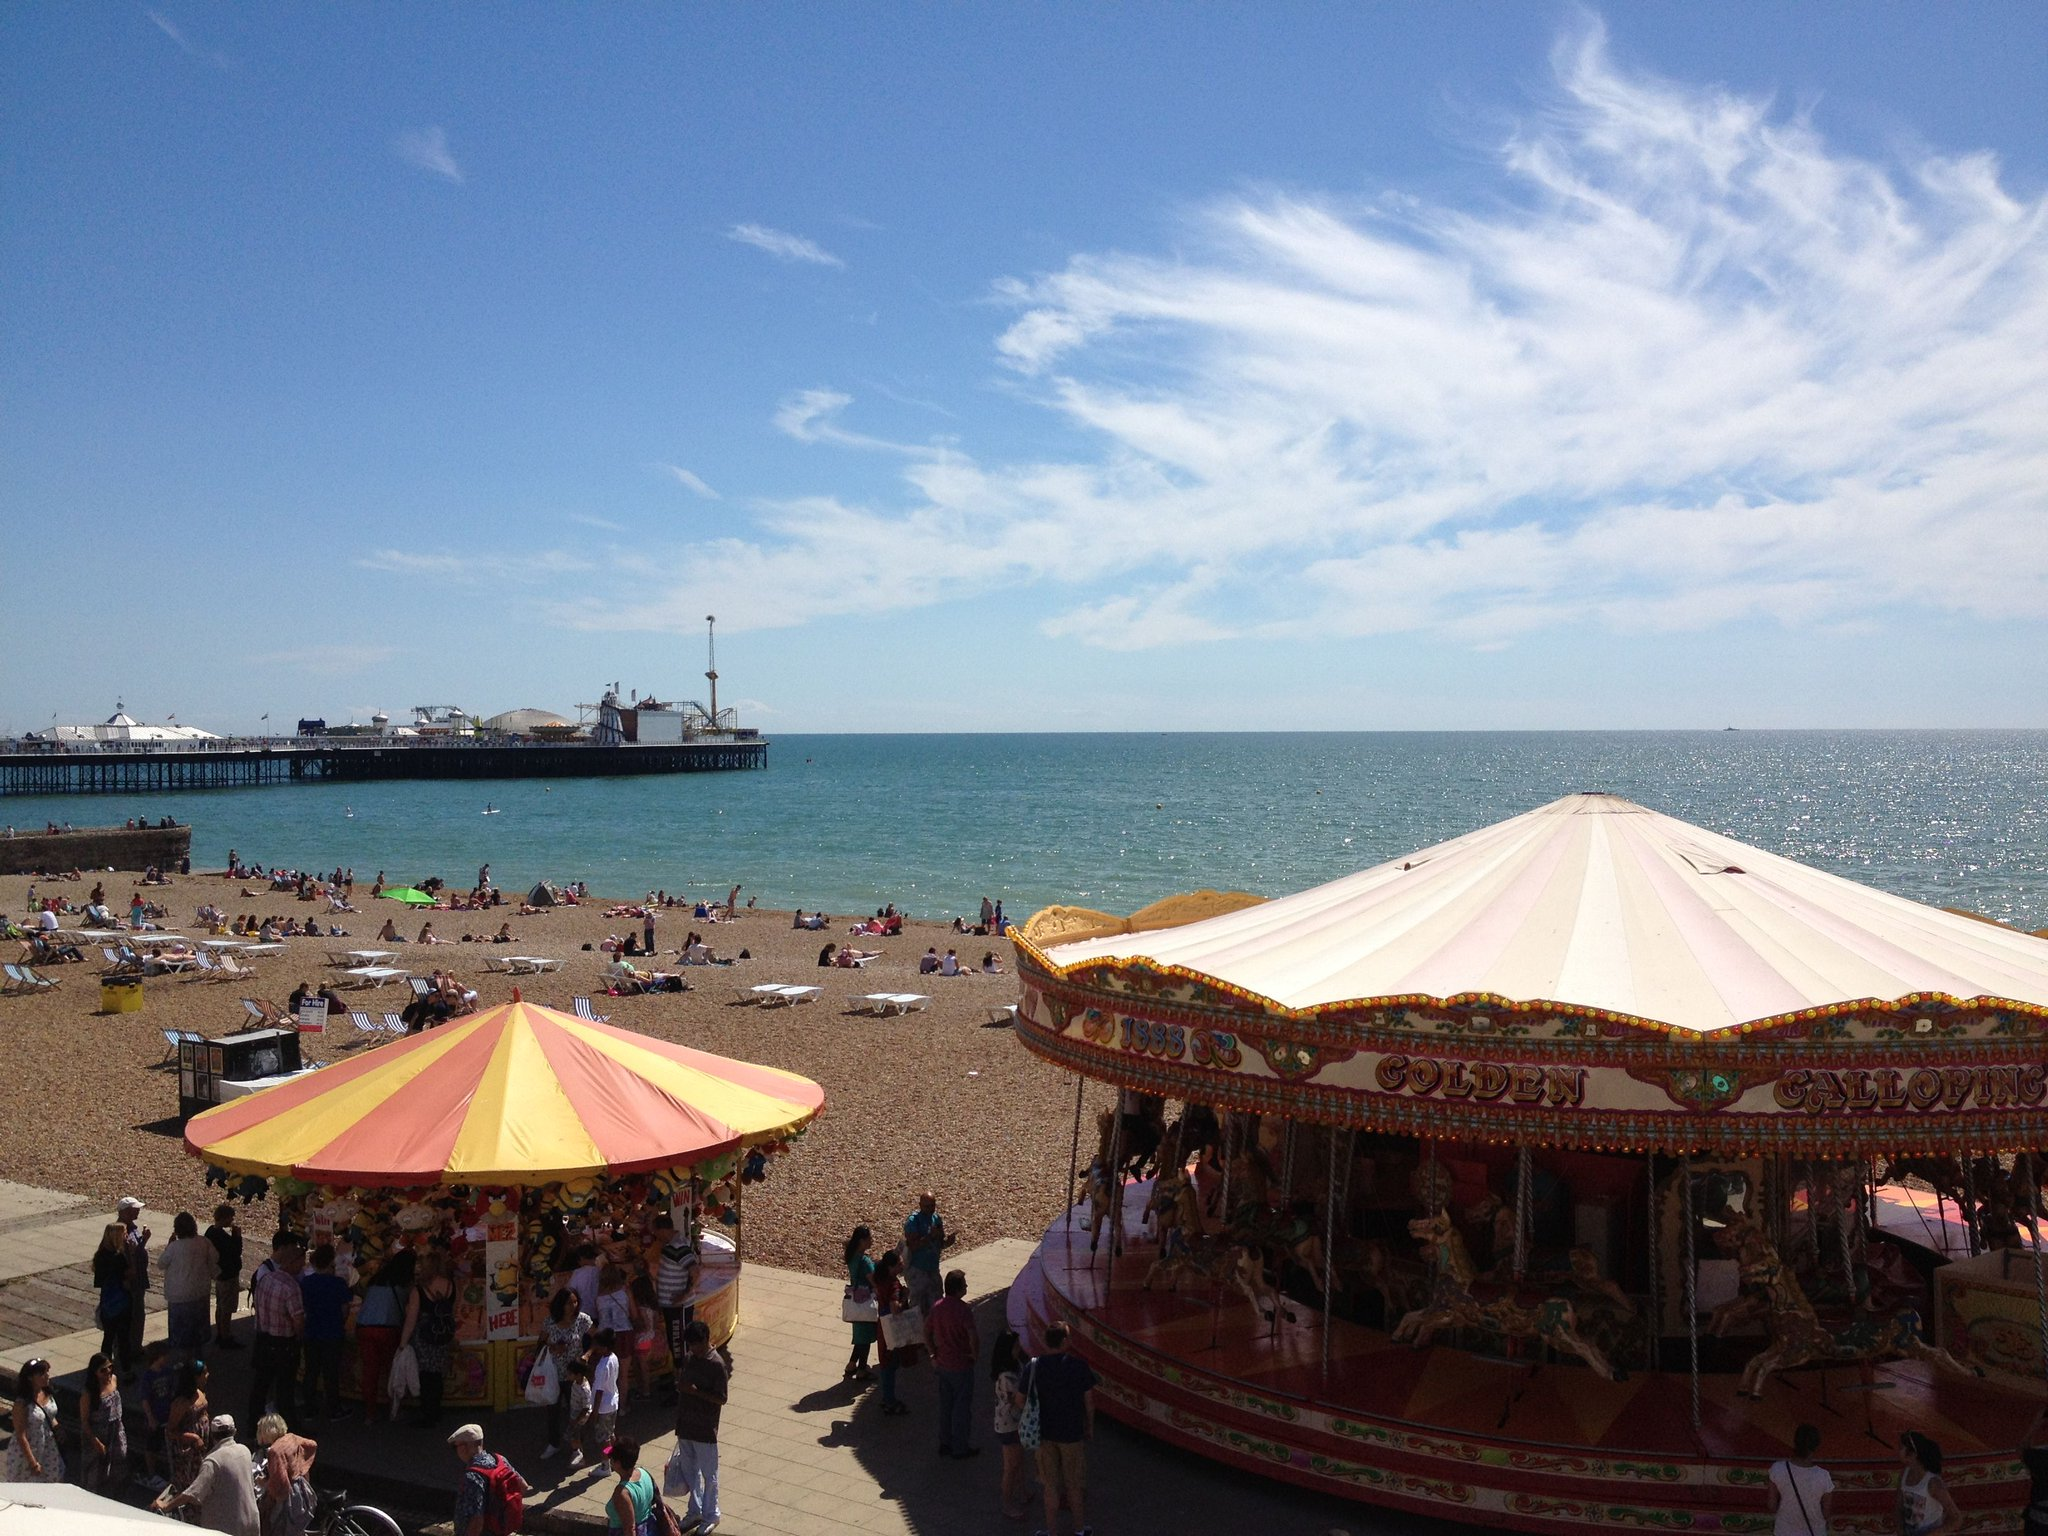 Welcome to everyone attending #dpassh2017. We hope you have a great conference @SussexUni. Enjoy the sunshine. #Brighton https://t.co/iefsASsRSK